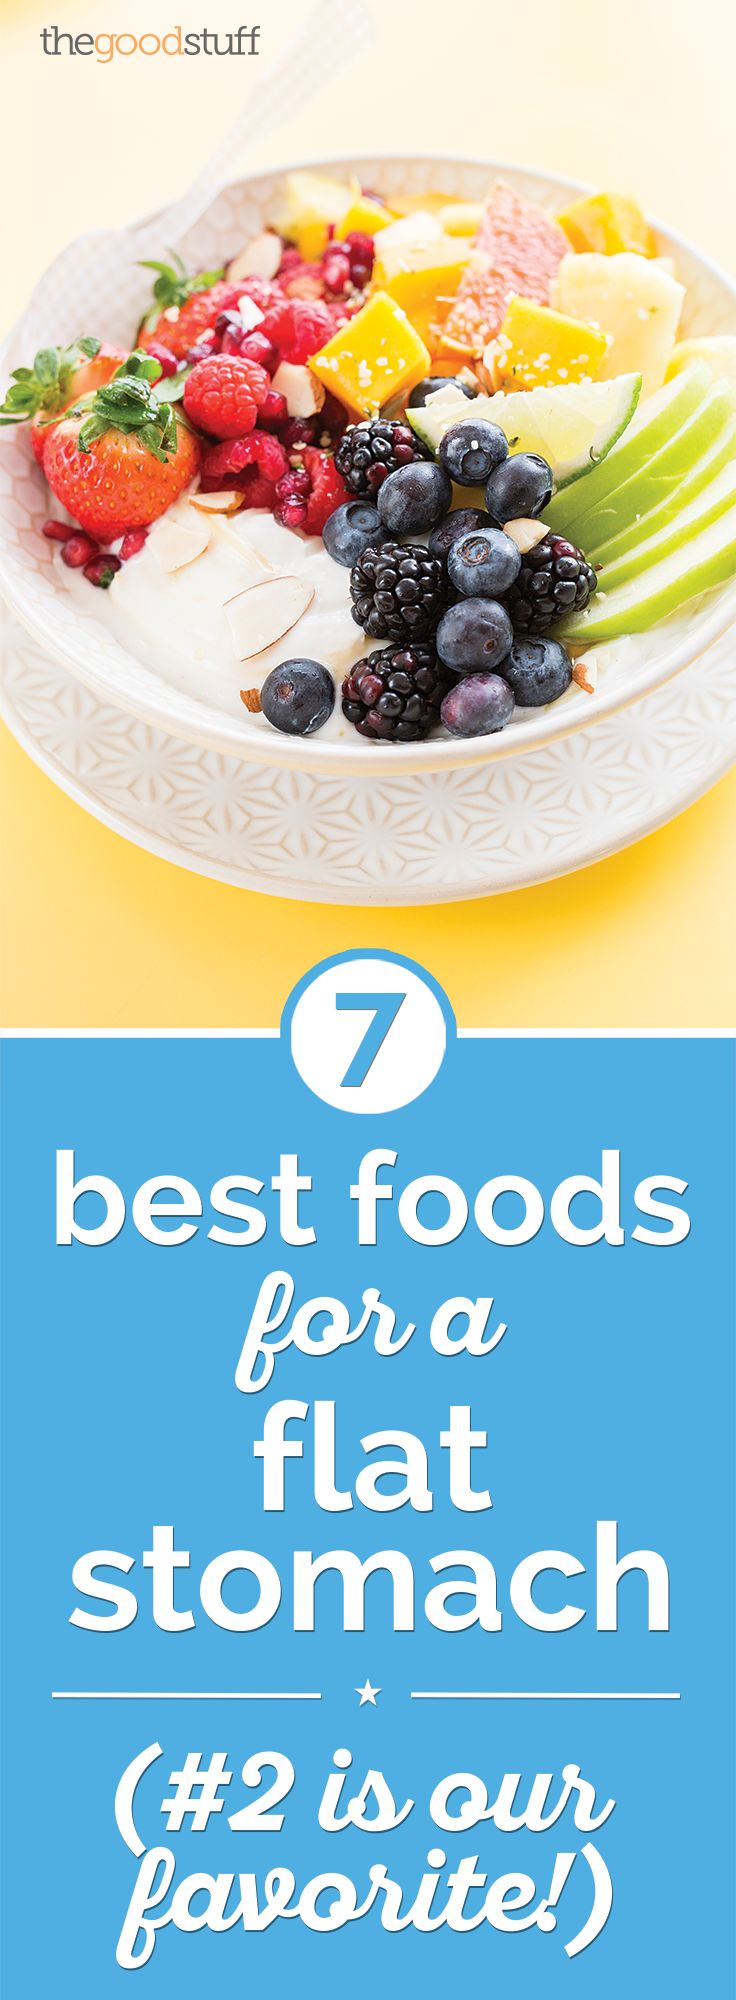 7 Best Foods for a Flat Stomach (#2 is Our Favorite!) - thegoodstuff